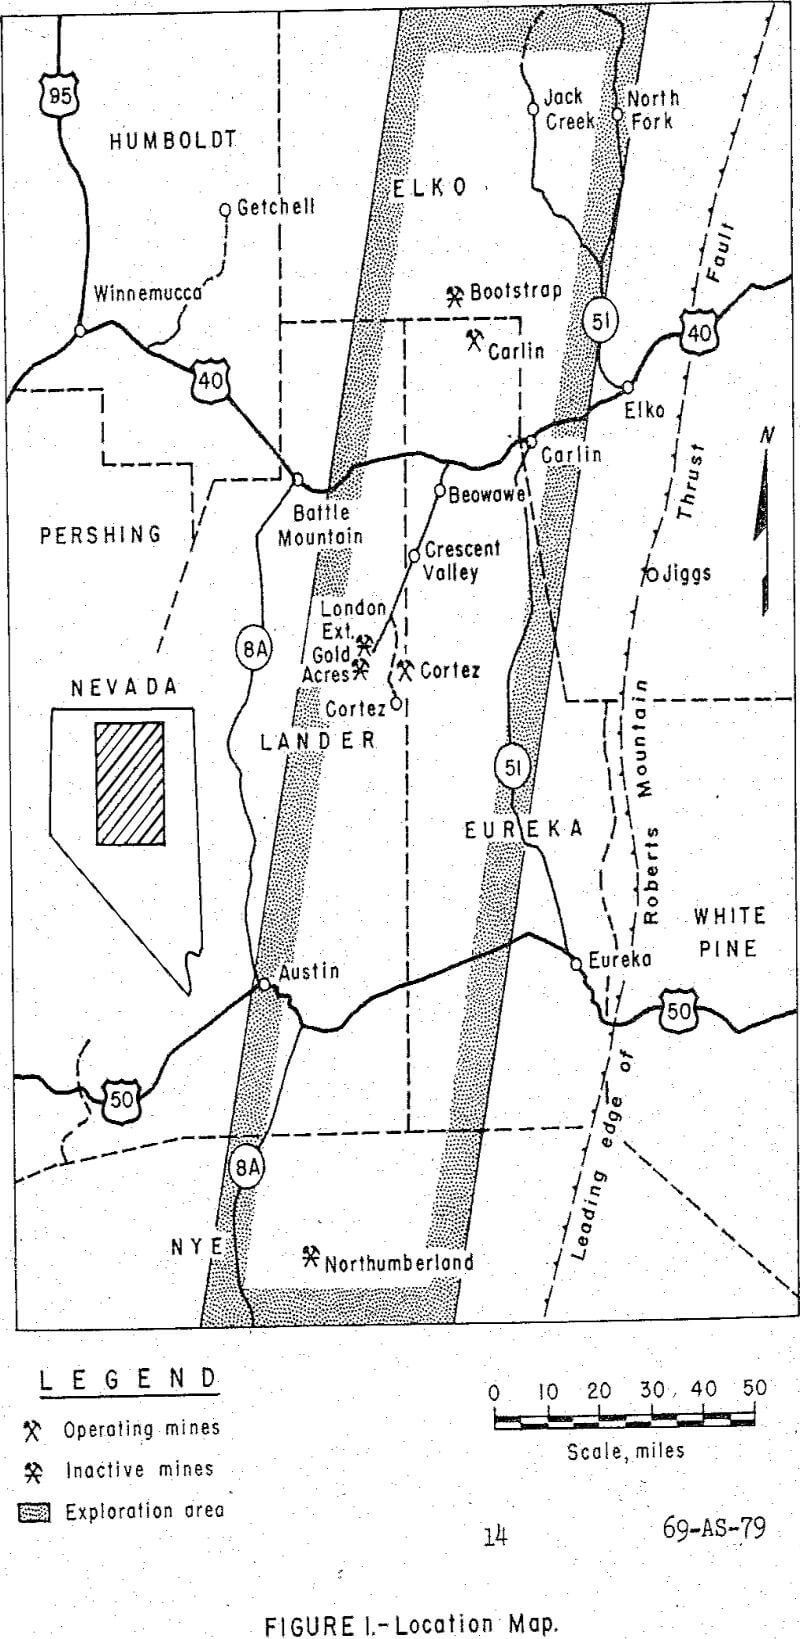 heap-leaching-of-gold location map